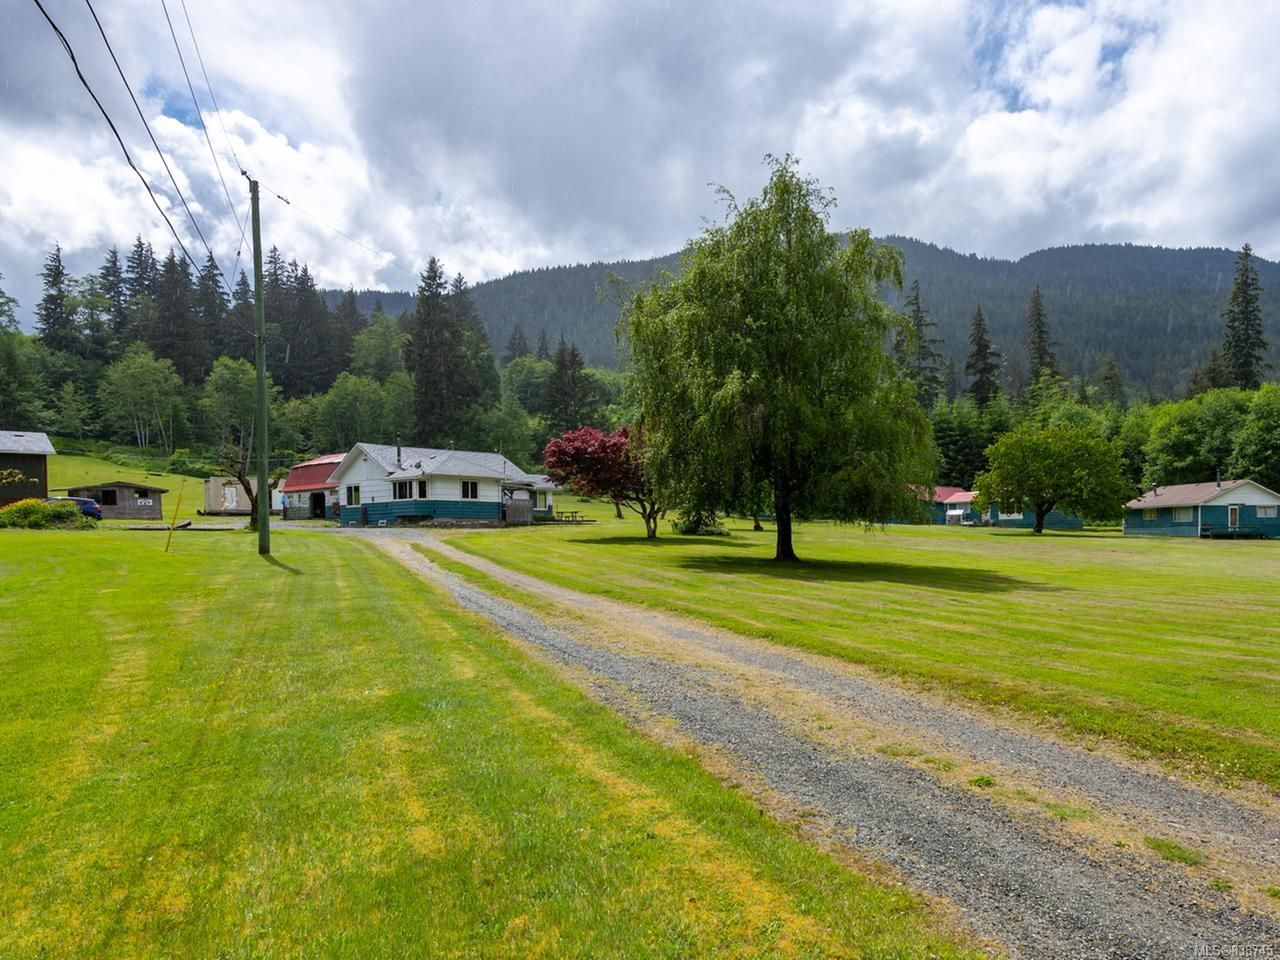 WELCOME TO ELKHAVEN - 989 Frenchman's Road, SAYWARD, B.C.